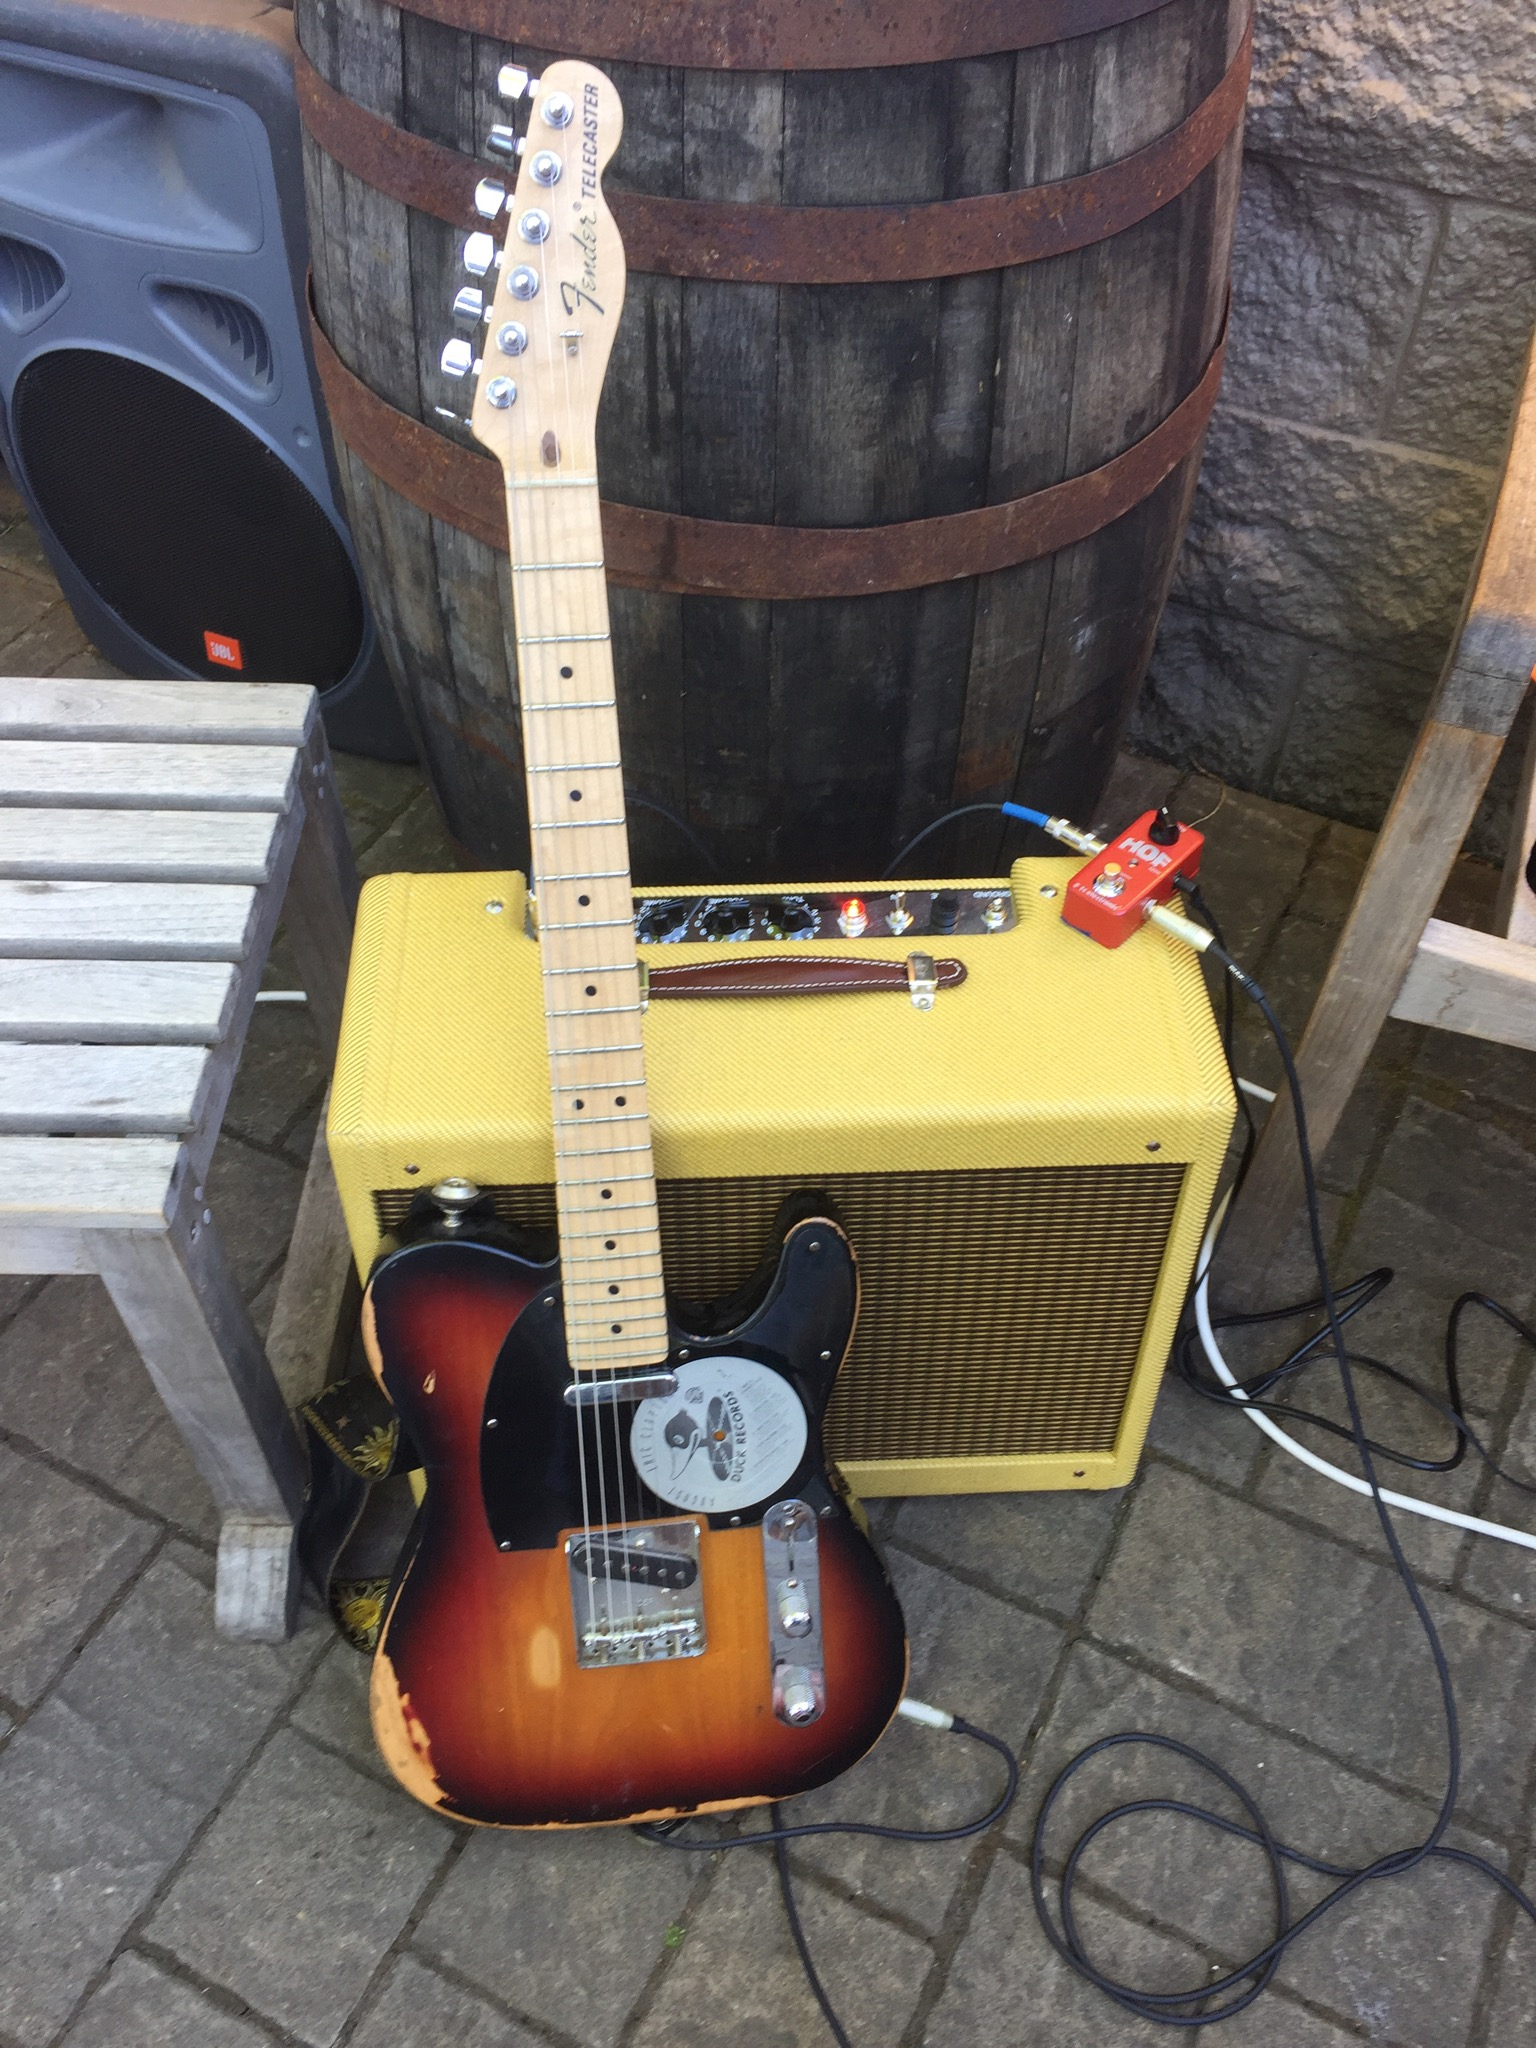 Welcome To Doityourself How Make A Circuit Board Guitar Pick Do It This Amp Is Fantastic Addition And May Be My Go From Now On Wont Last Build You Chad Buy Tweed 5e3 Kit